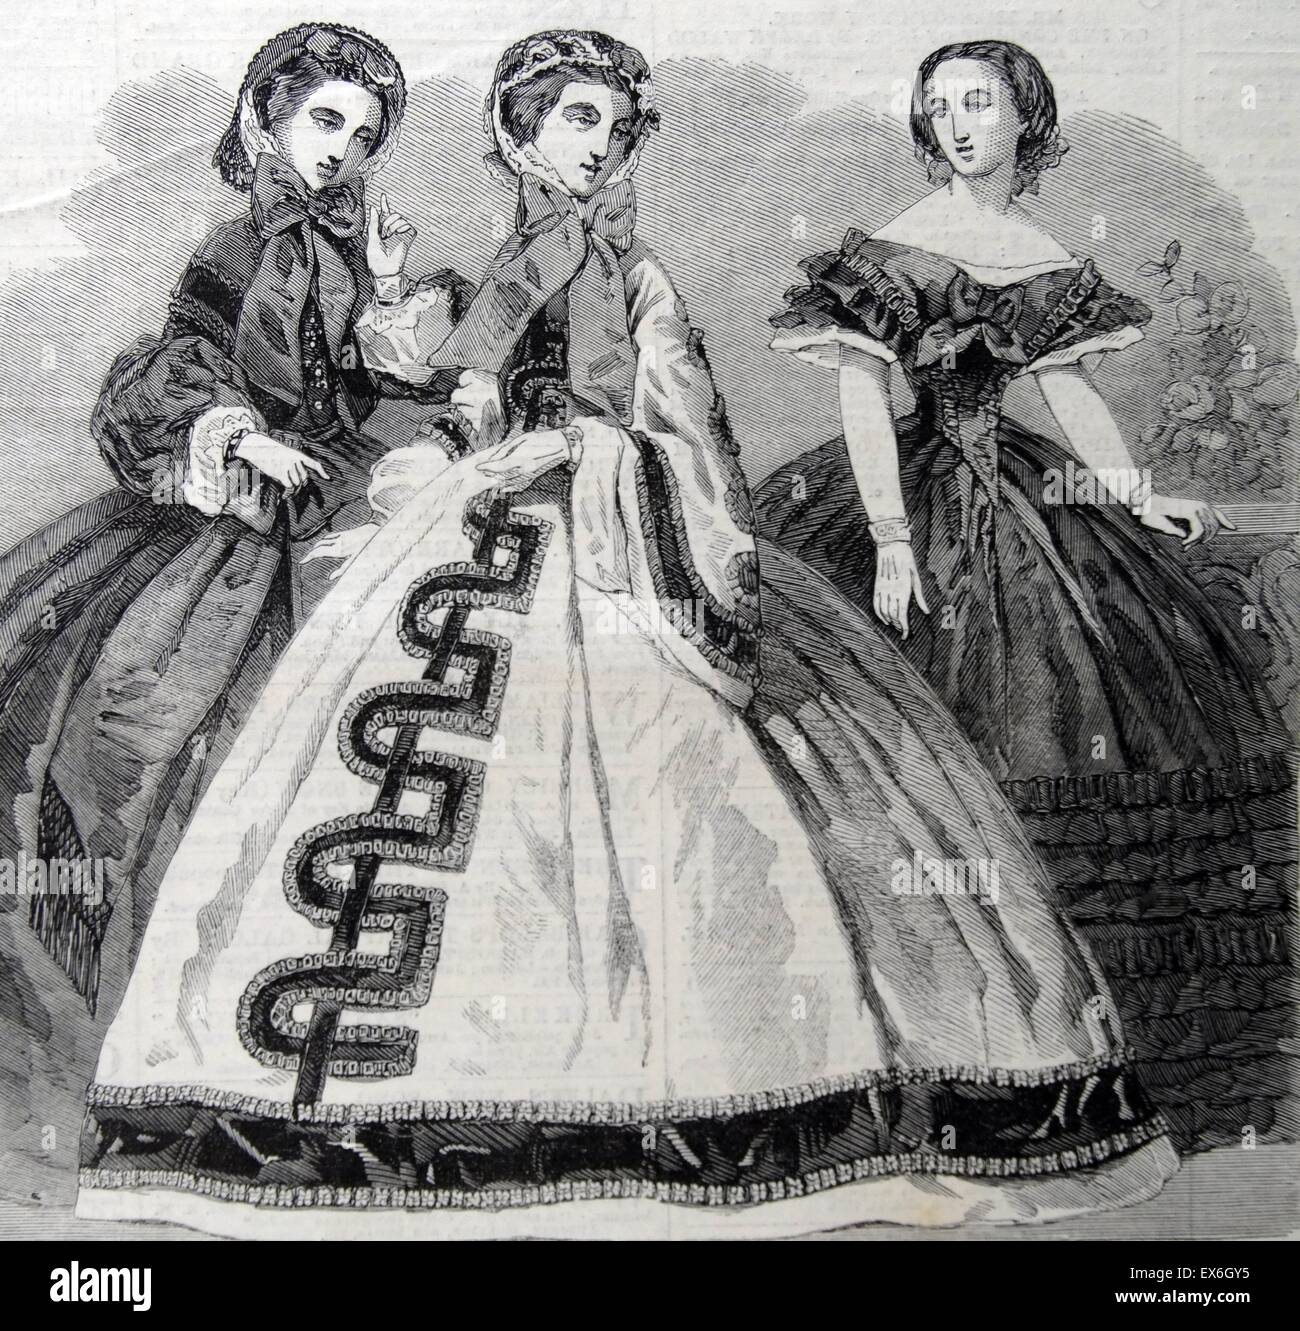 Engraving depicting the Paris Fashion for December. Left to right: Visiting Dress, Walking Dress, Evening Dress. Stock Photo